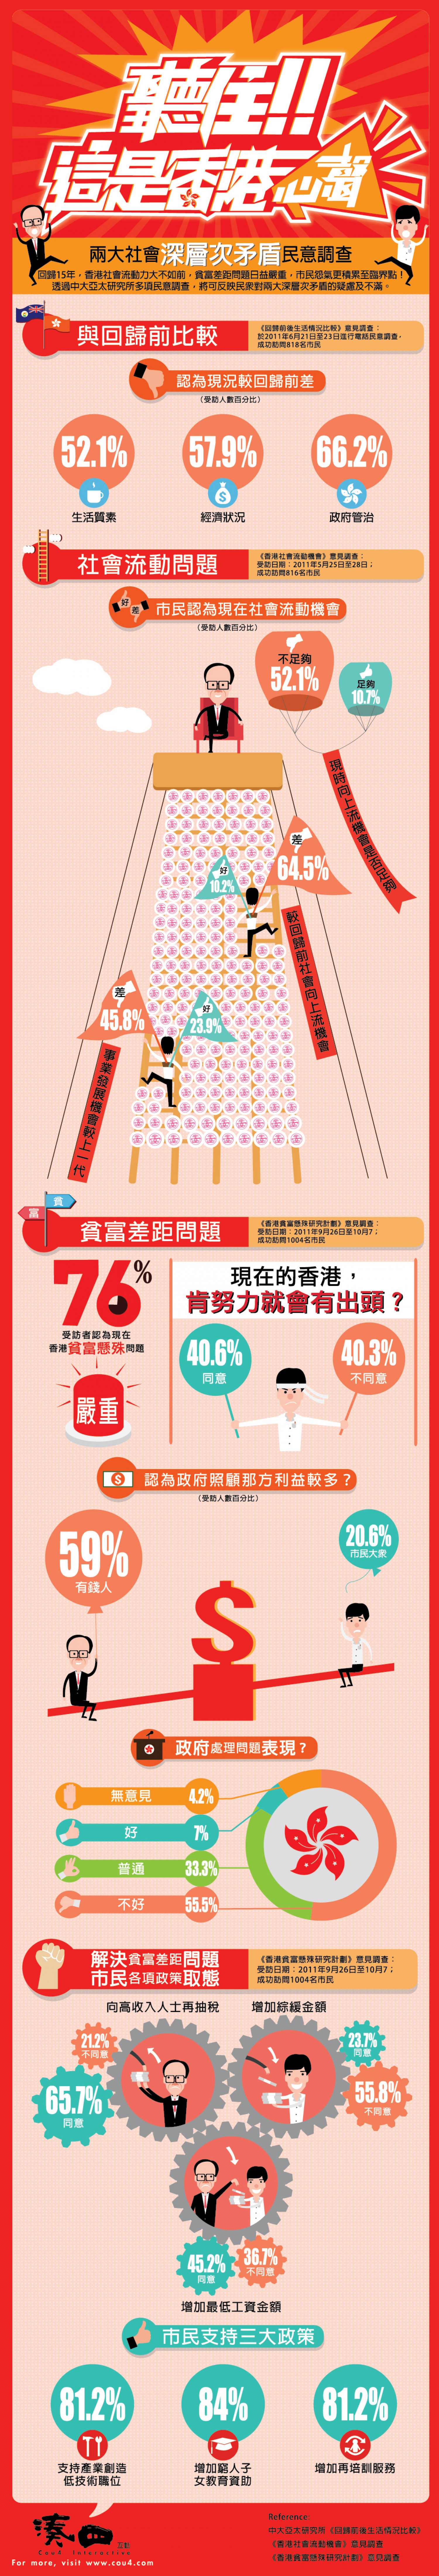 Hong Kong's Deep-rooted Conflicts Infographic